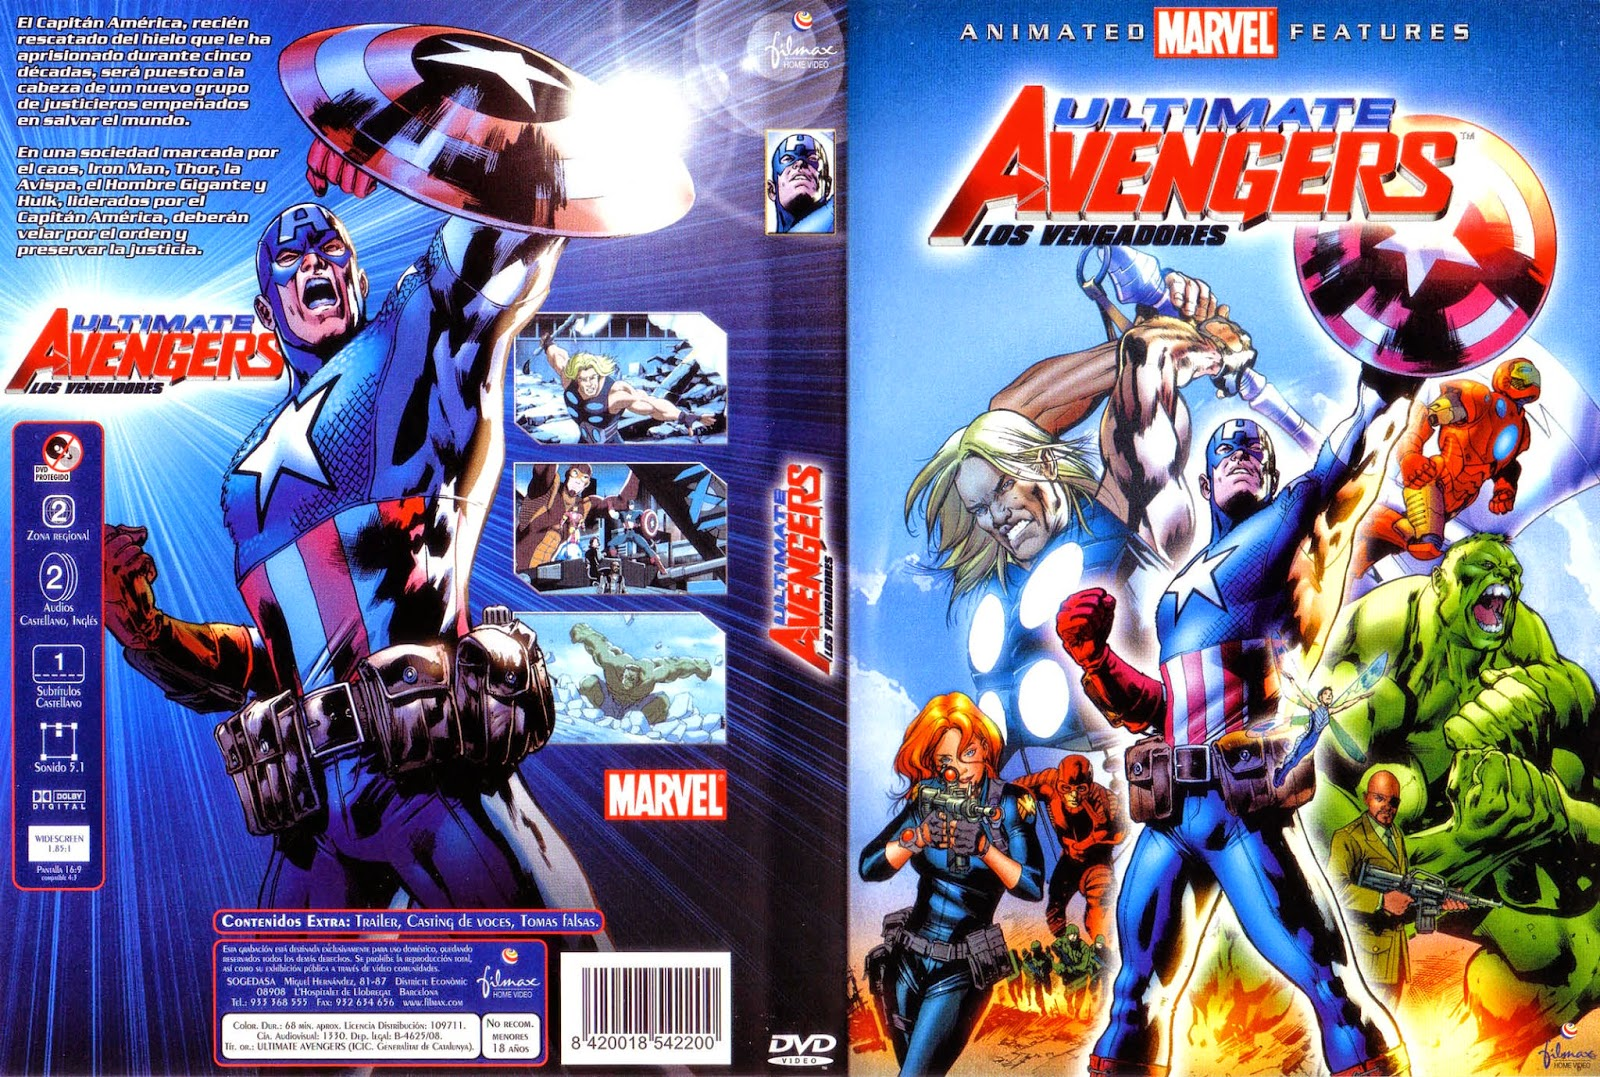 Vengadores (Ultimate Avengers) DVD